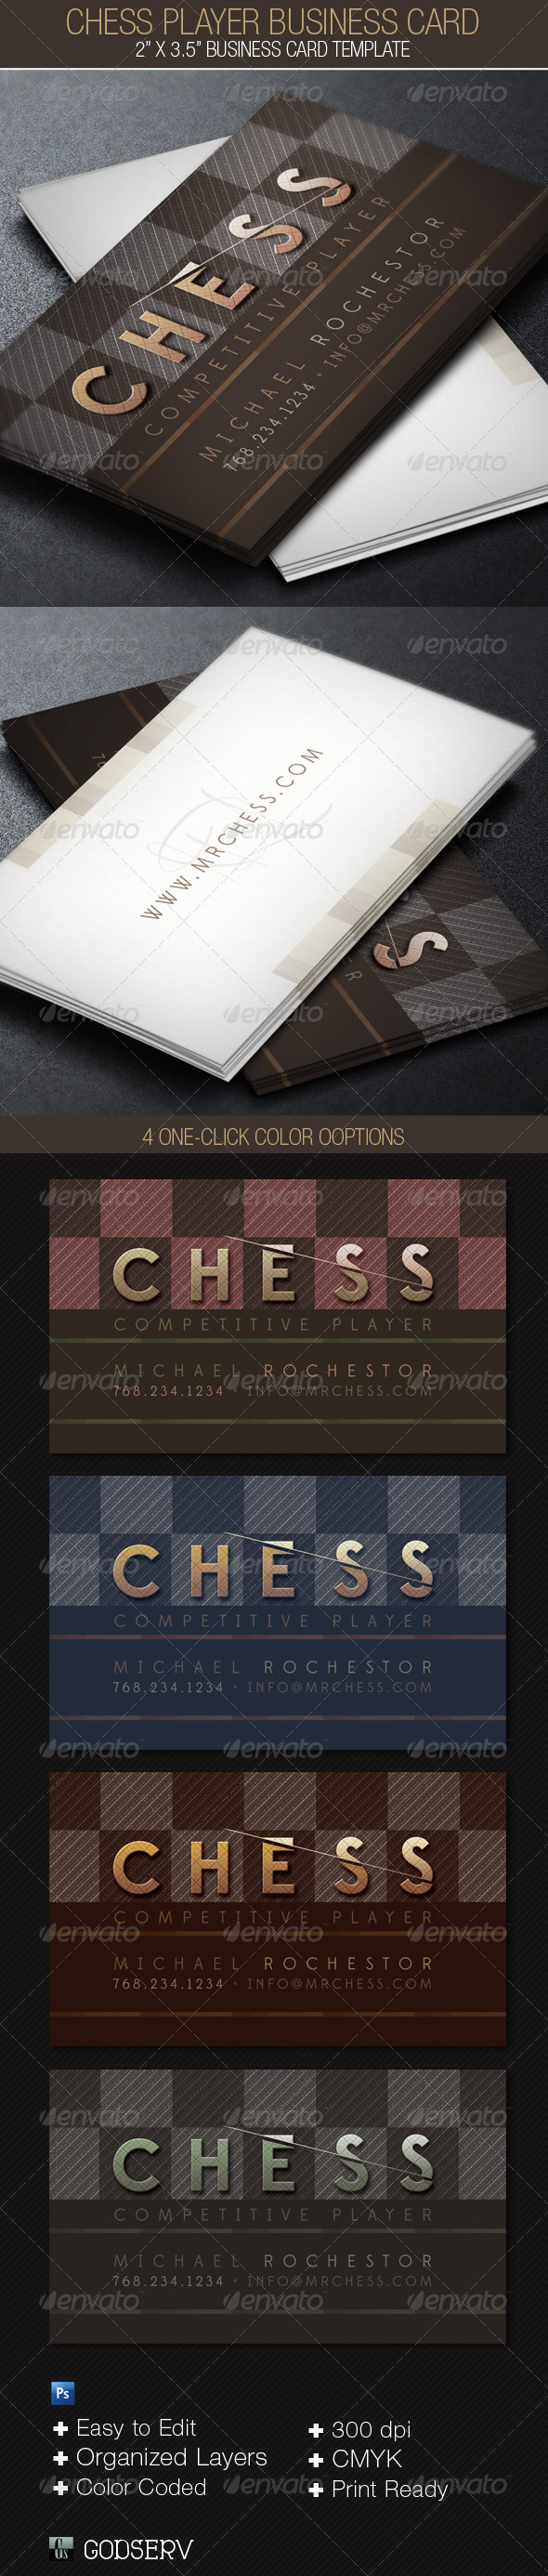 Chess Player Business Card Template - Industry Specific Business Cards